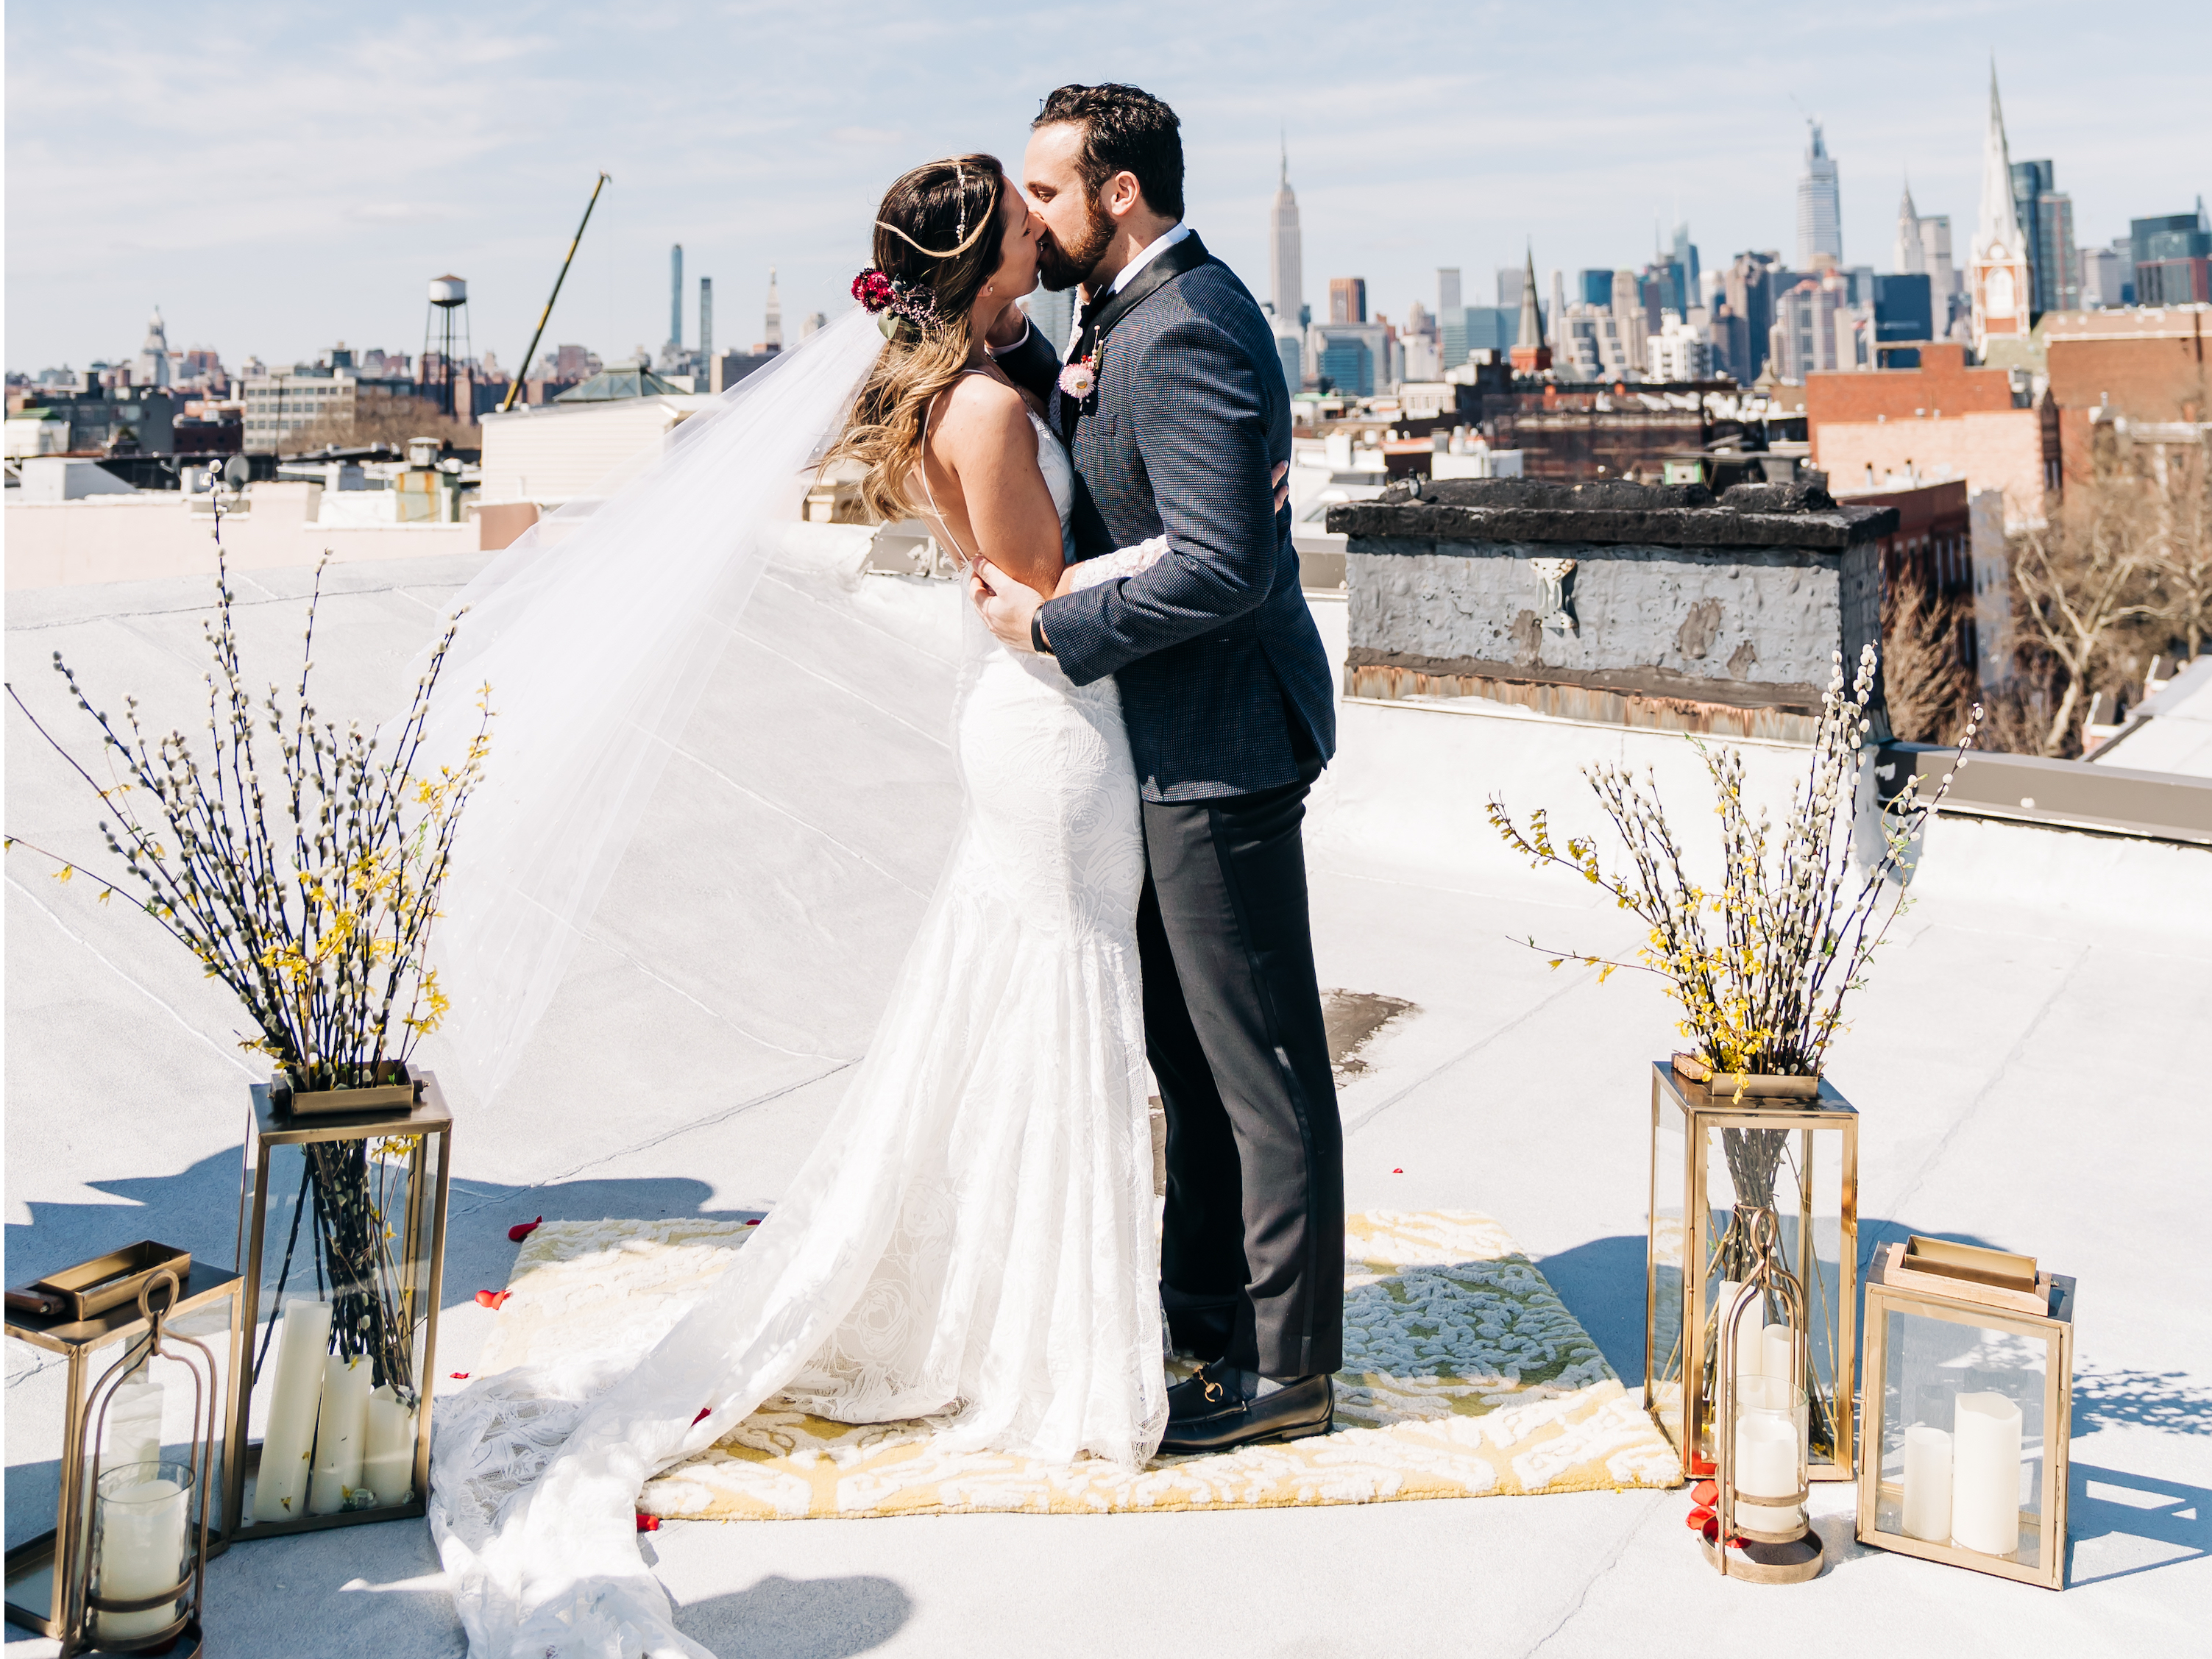 A New York couple got married on their roof after postponing their 200-guest wedding, and the pictures are stunning